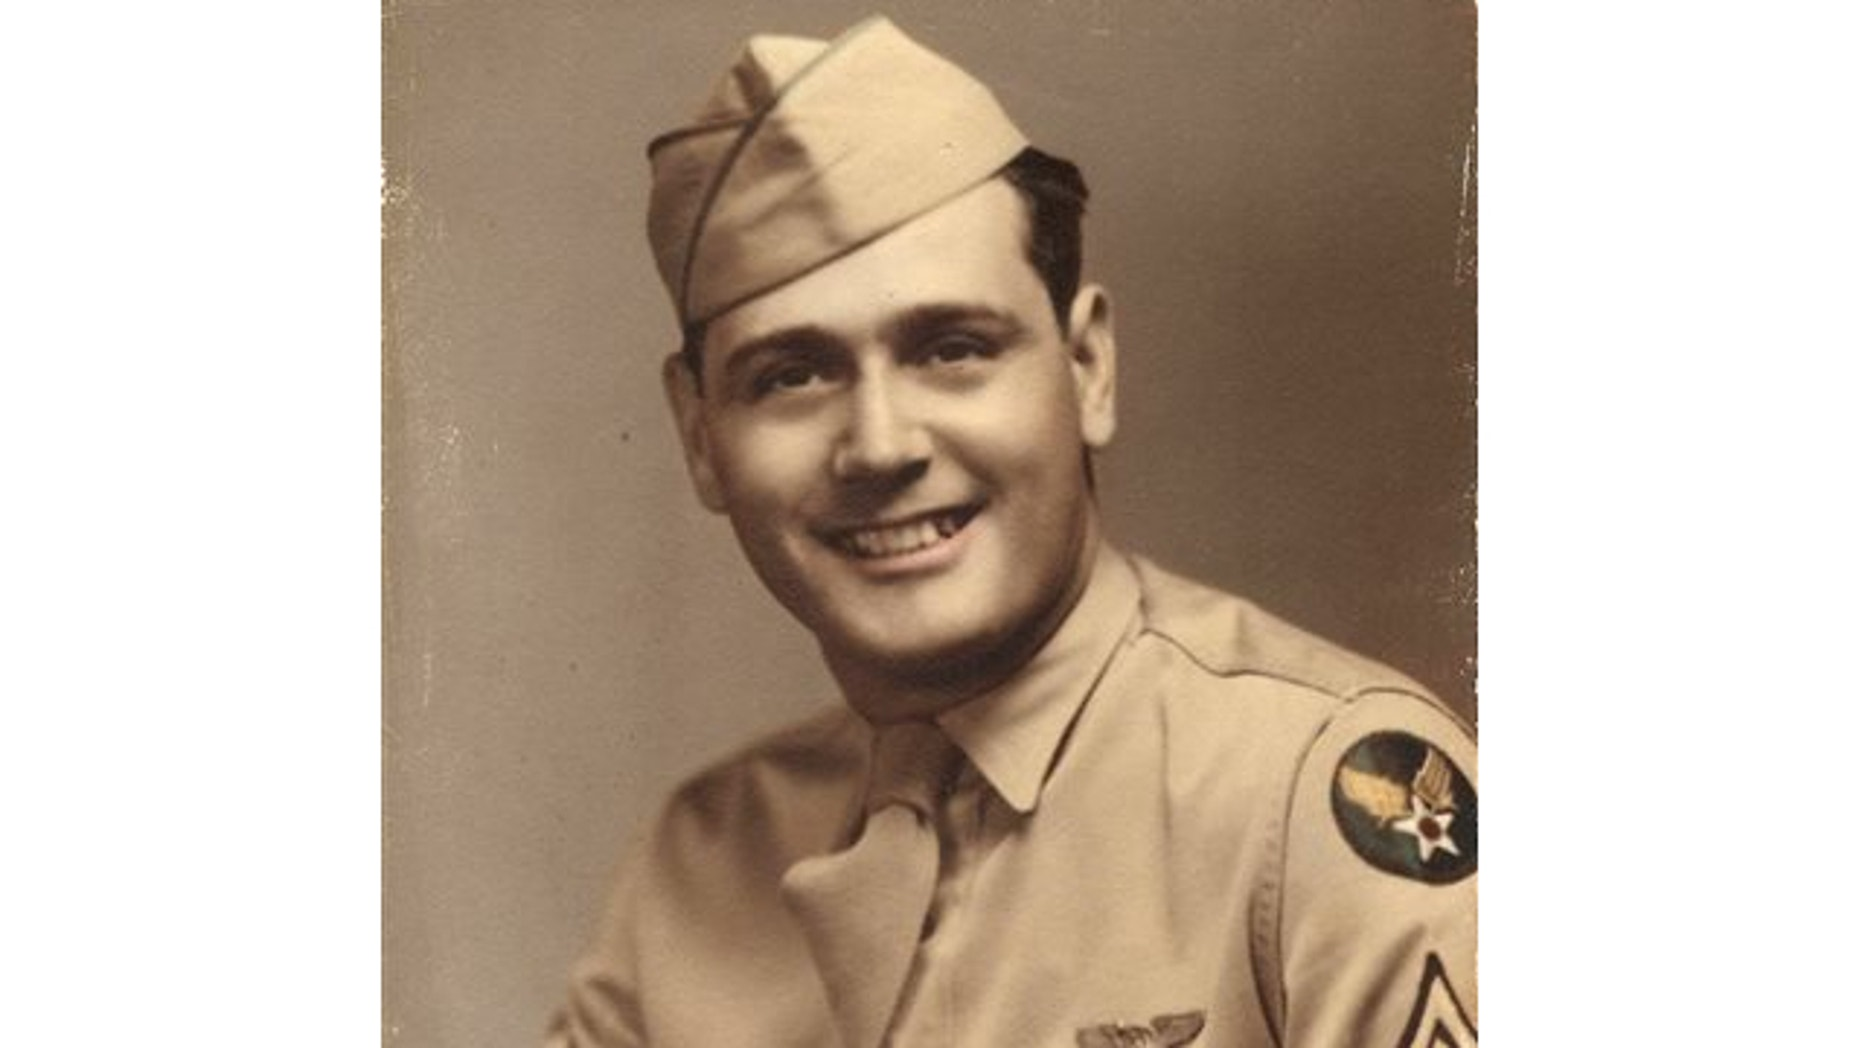 UNDATED: This handout photo provided by the family, shows World War II airman Sgt. Dominick Licari, whose remains were identified nearly 70 years after his plane and two others slammed into a remote, jungle-covered mountainside in the South Pacific.